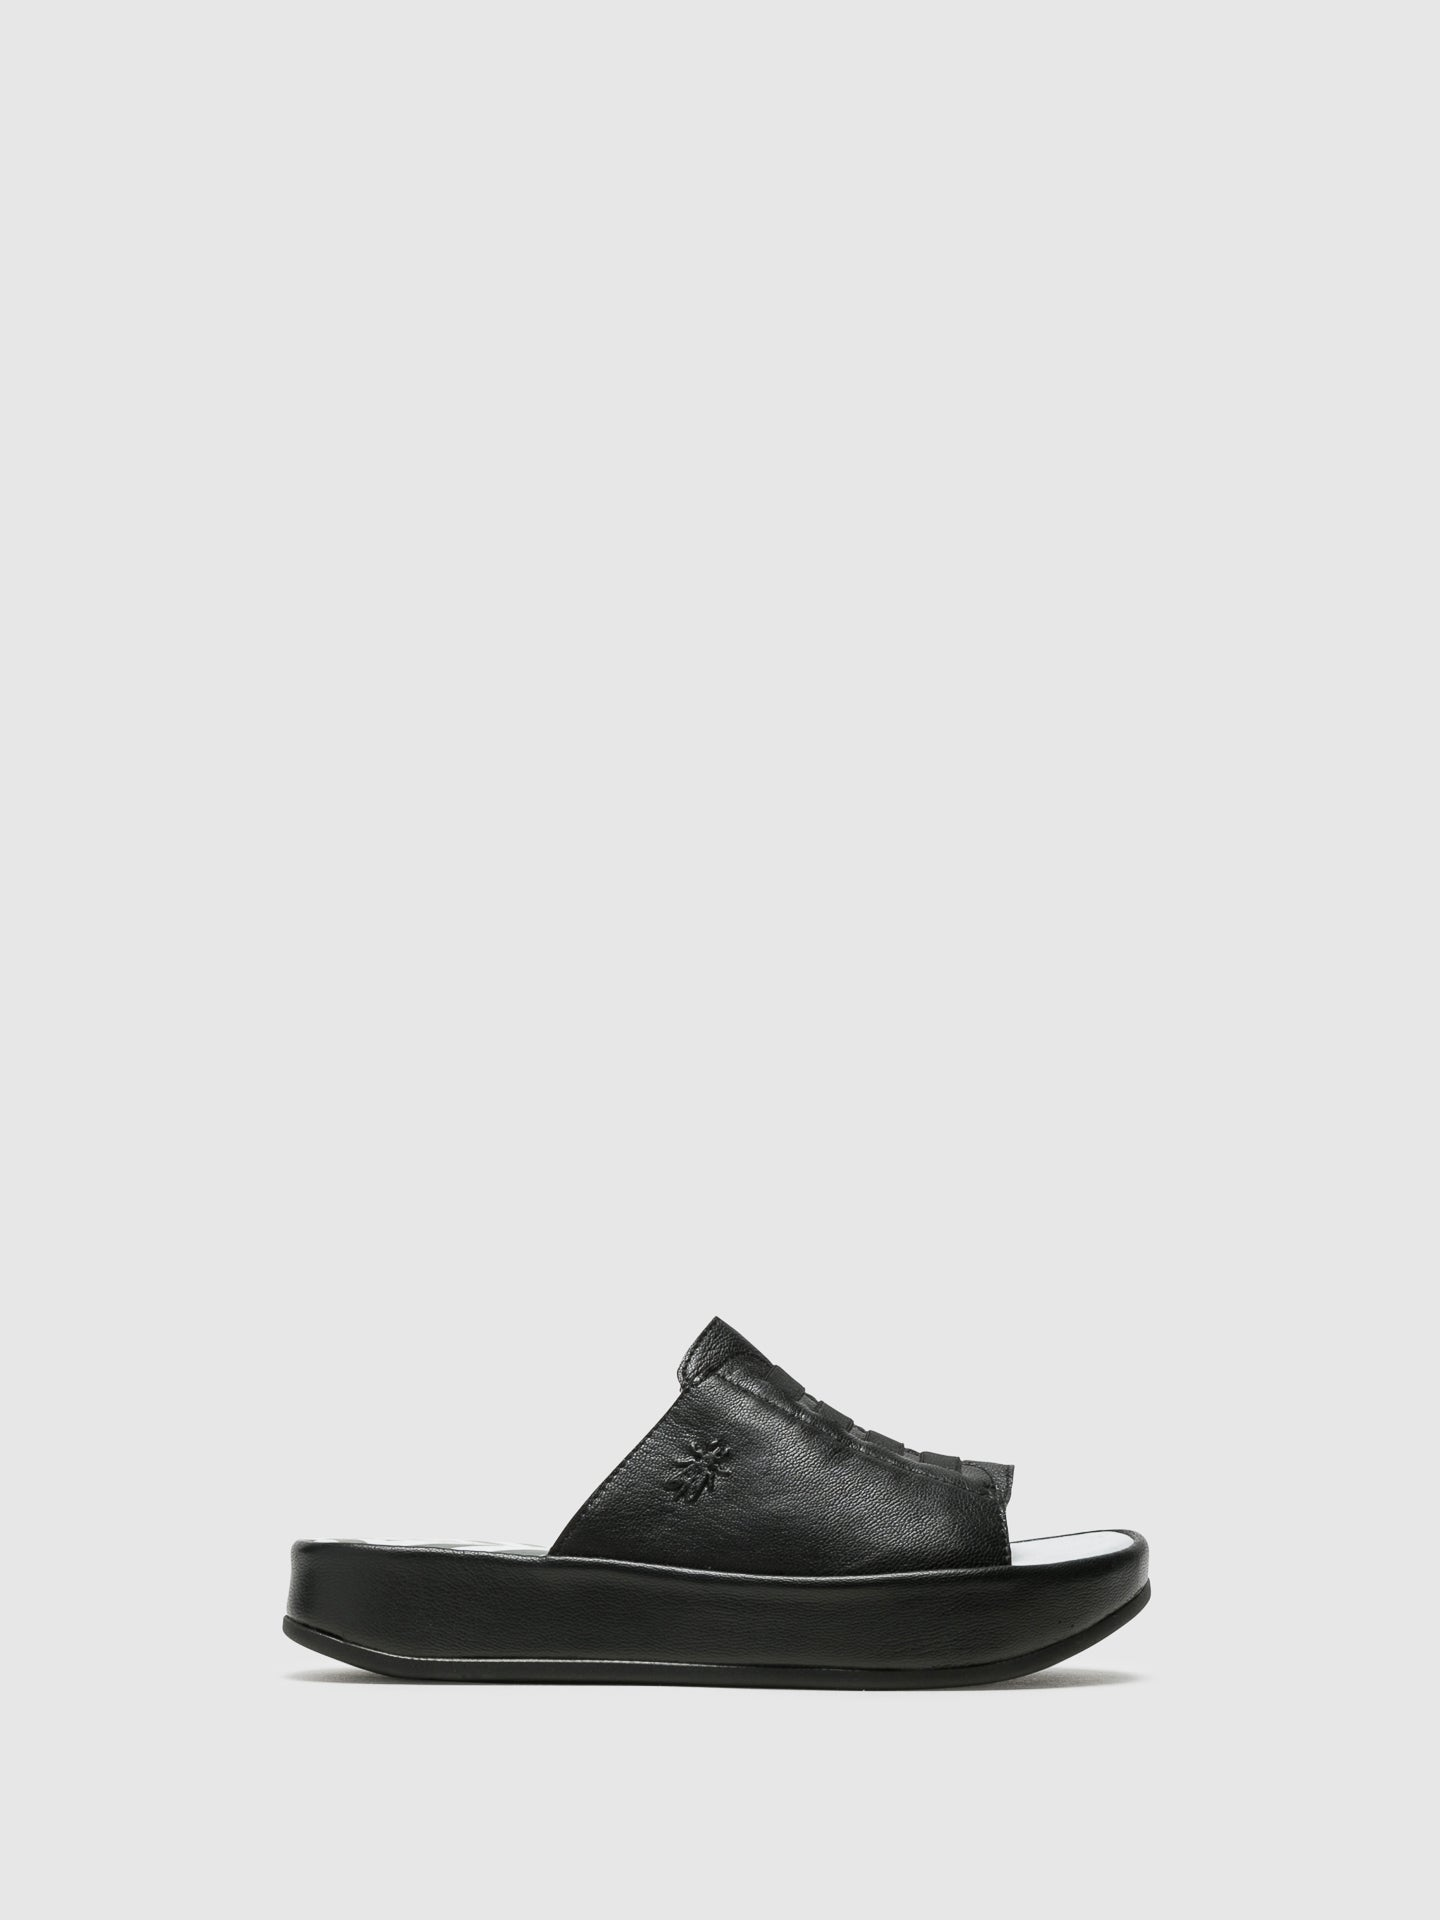 Fly London Black Platform Mules